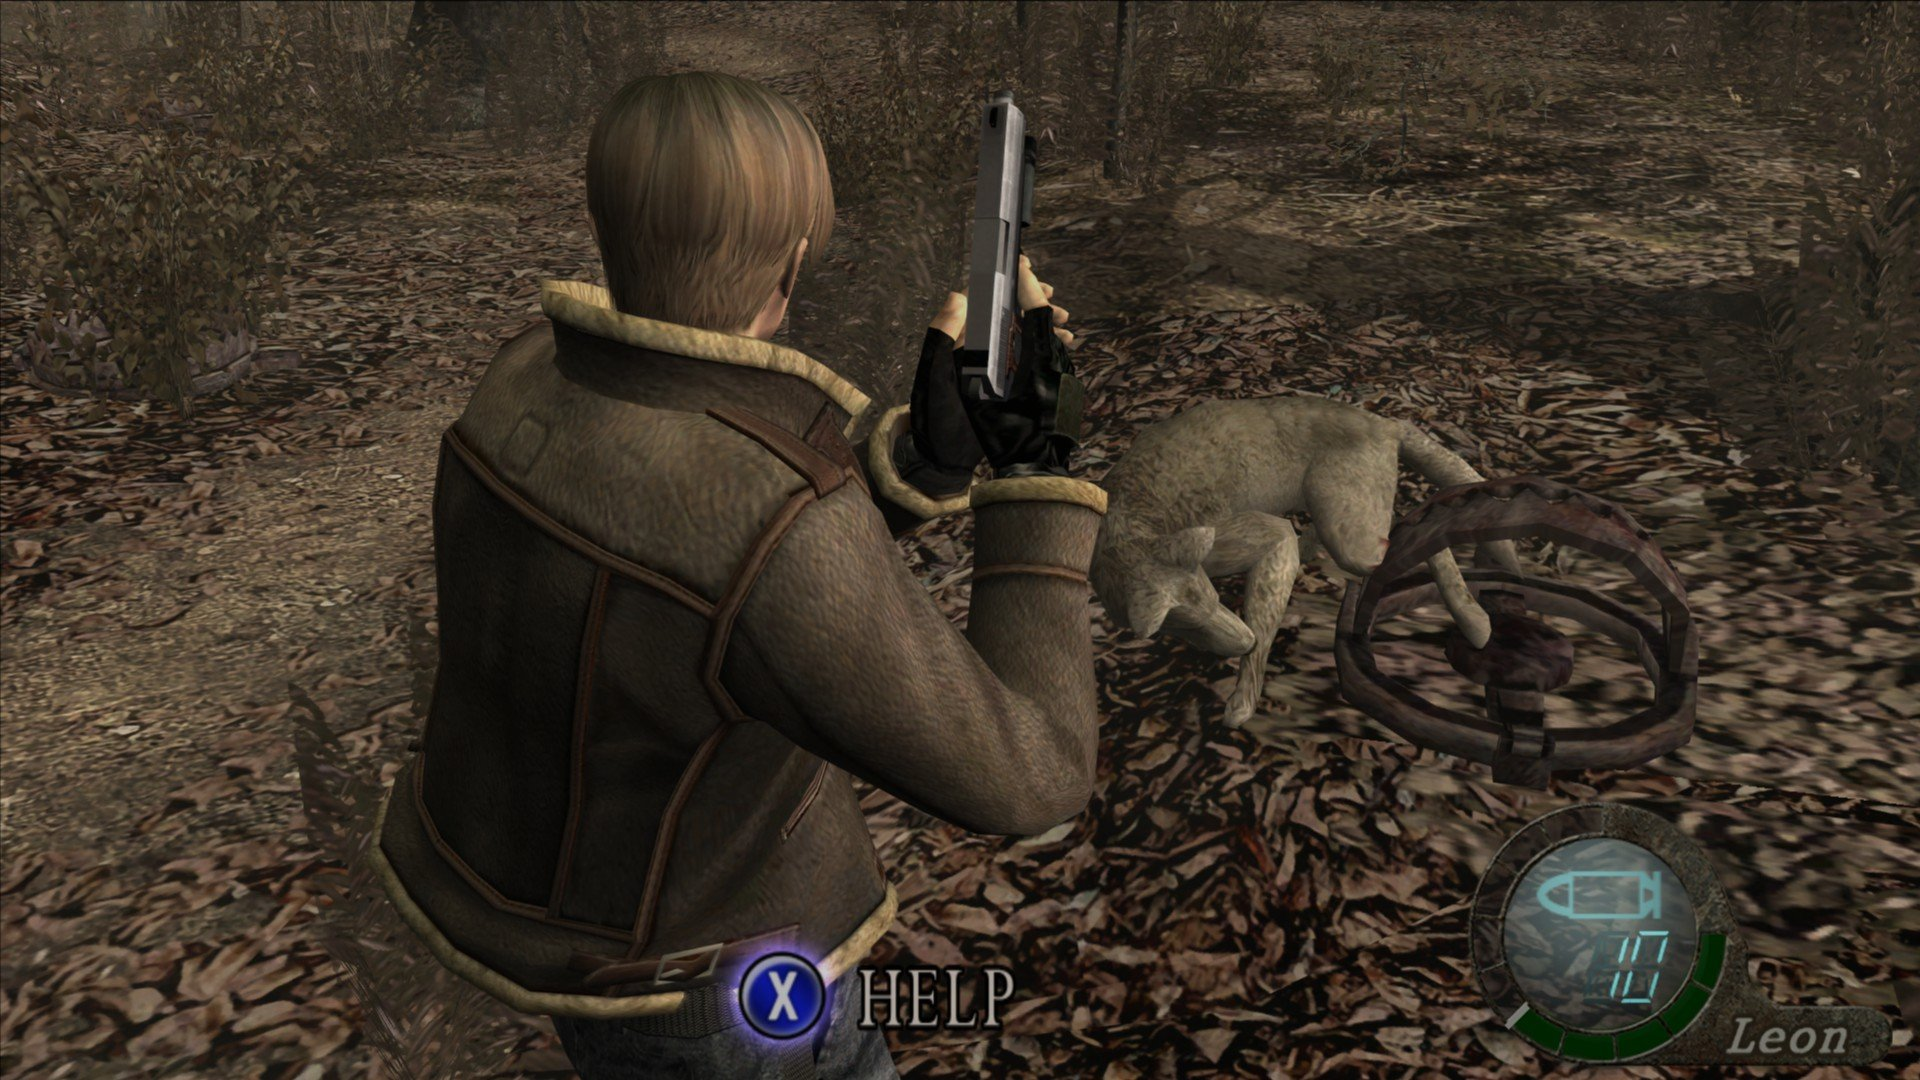 Save or kill dog in Resident Evil 4